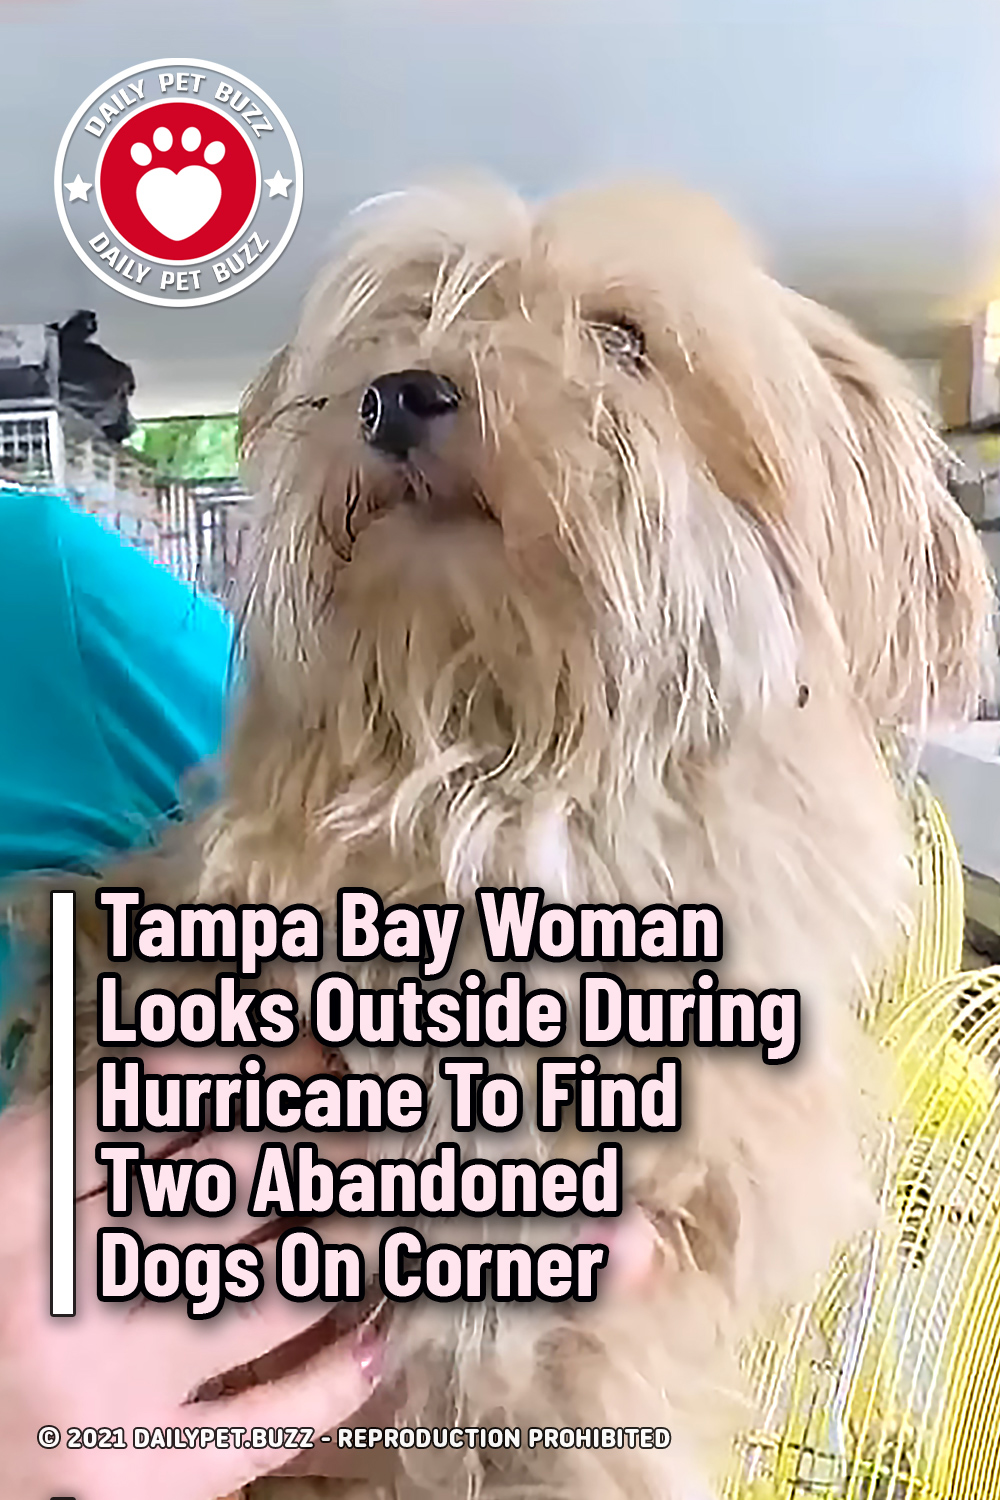 Tampa Bay Woman Looks Outside During Hurricane To Find Two Abandoned Dogs On Corner